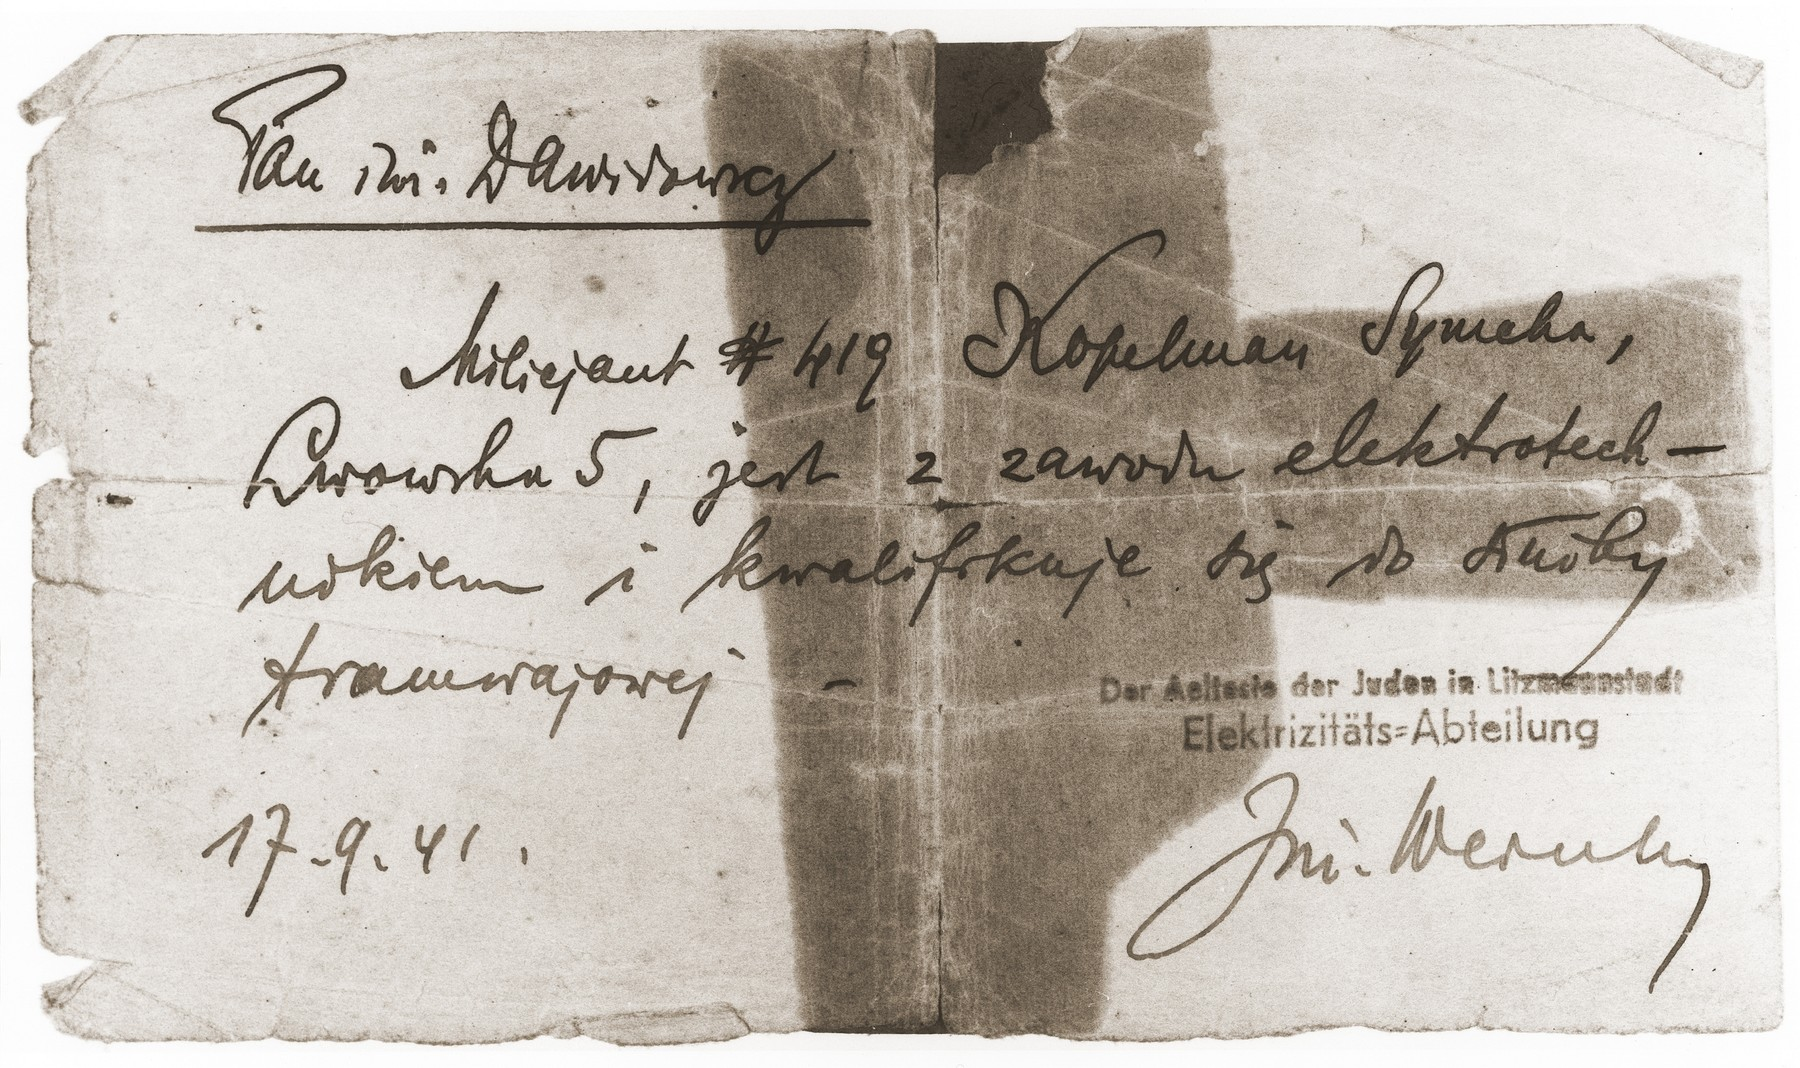 Referral notice signed by Engineer Dawidowicz recommending that Symcha Kopelman, currently a policeman, be given a job in the electrical department servicing streetcars.